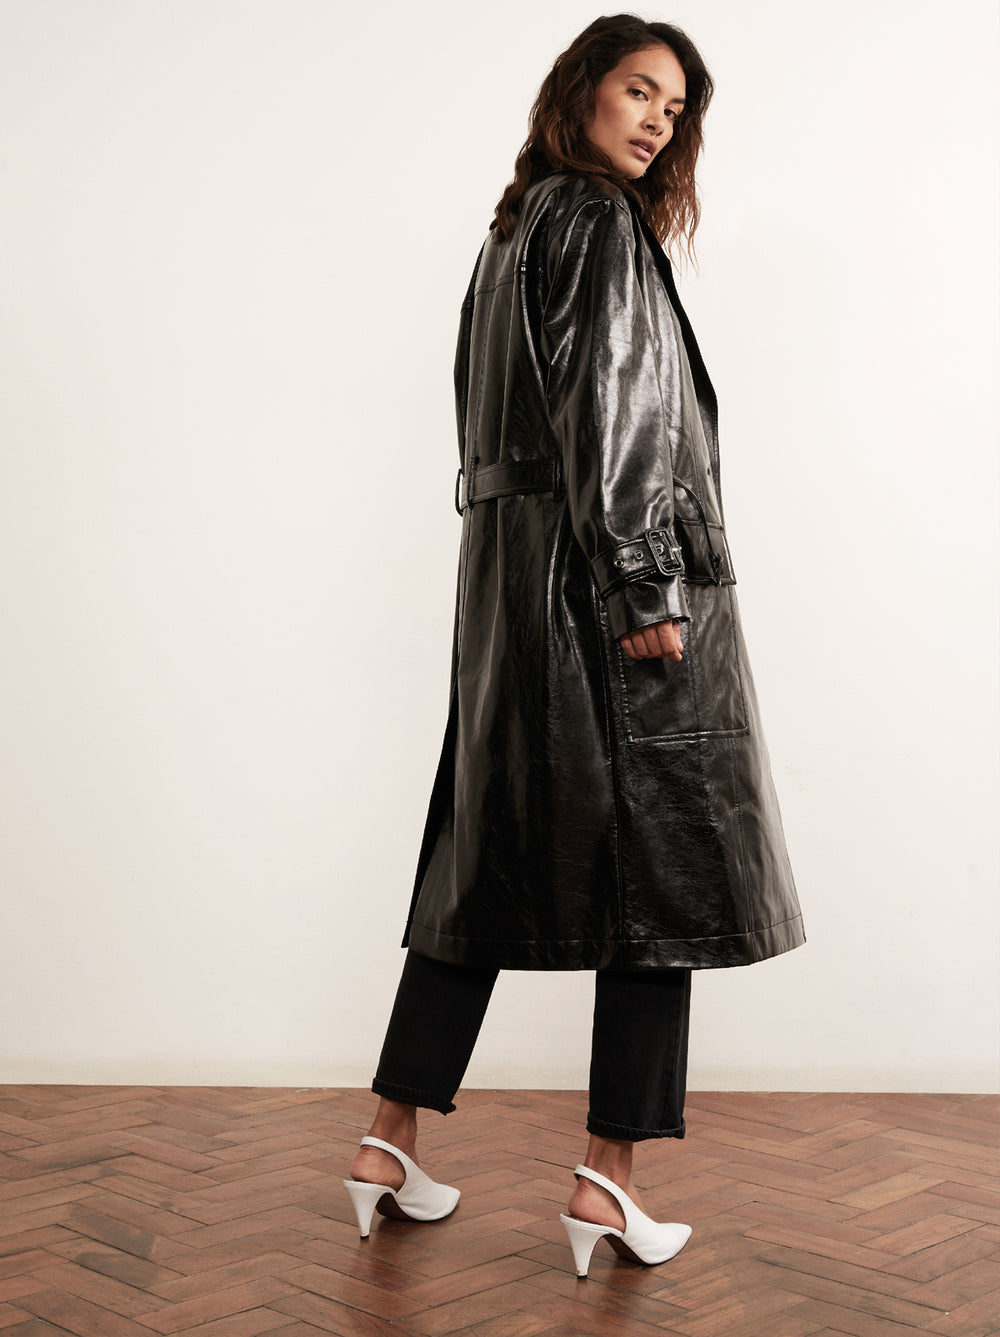 Justine Black Vinyl Trench Coat by KITRI Studio